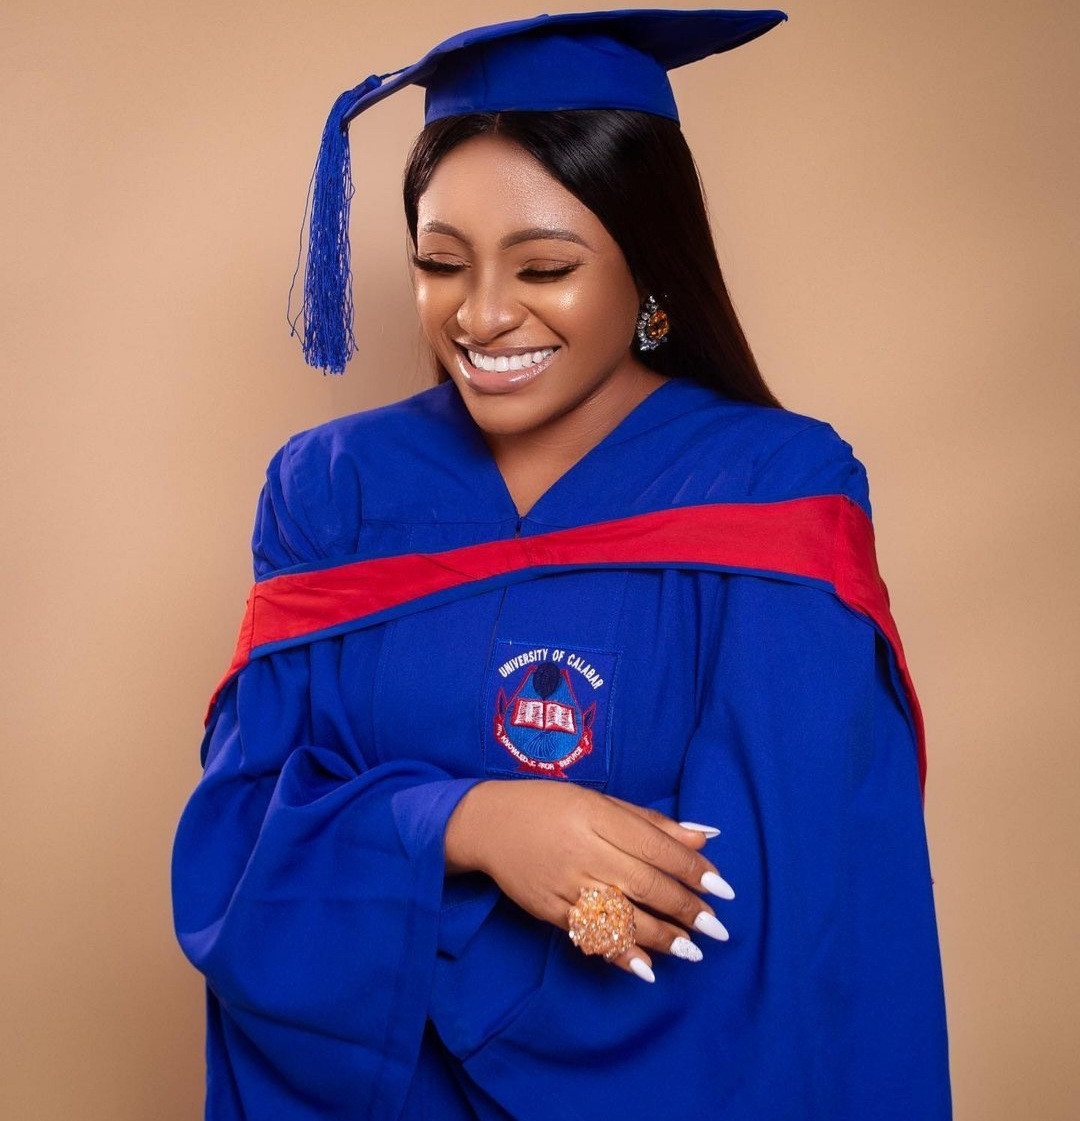 Nursing mum who sat for exam while heavily pregnant becomes first and only graduate with First Class in her department